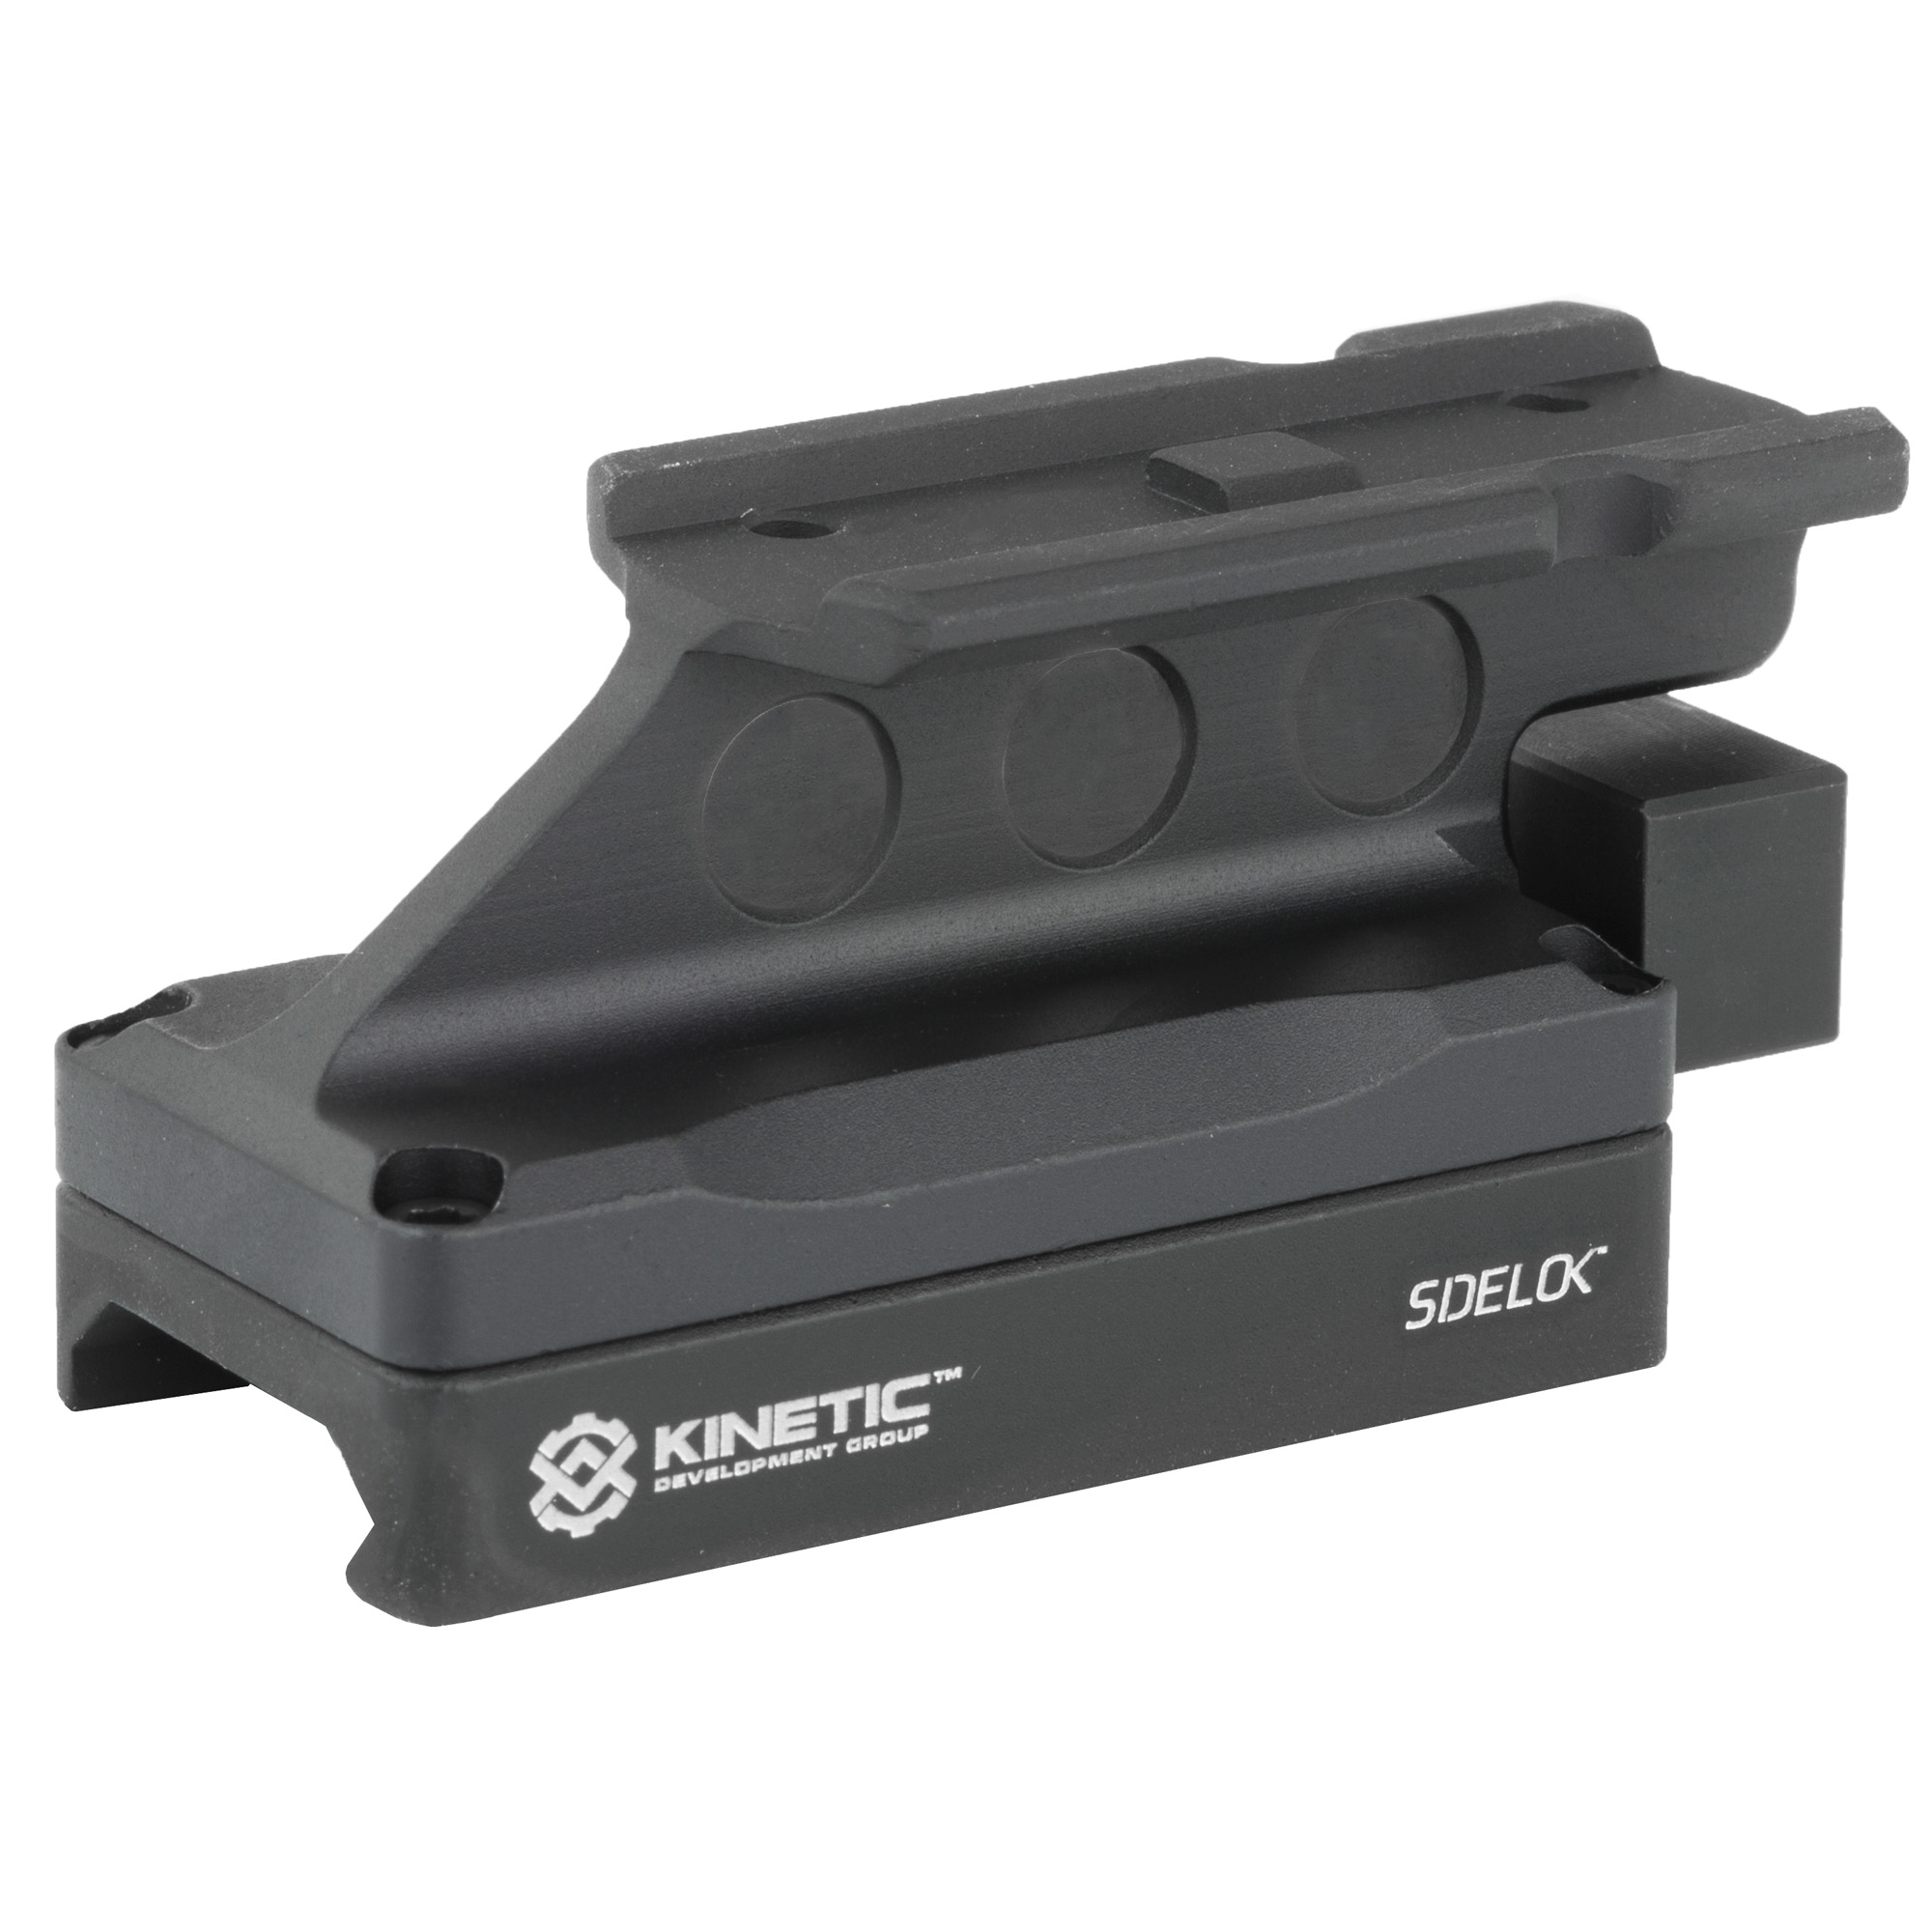 Kdg Sidelok Aimpoint T1/t2/h1/h2